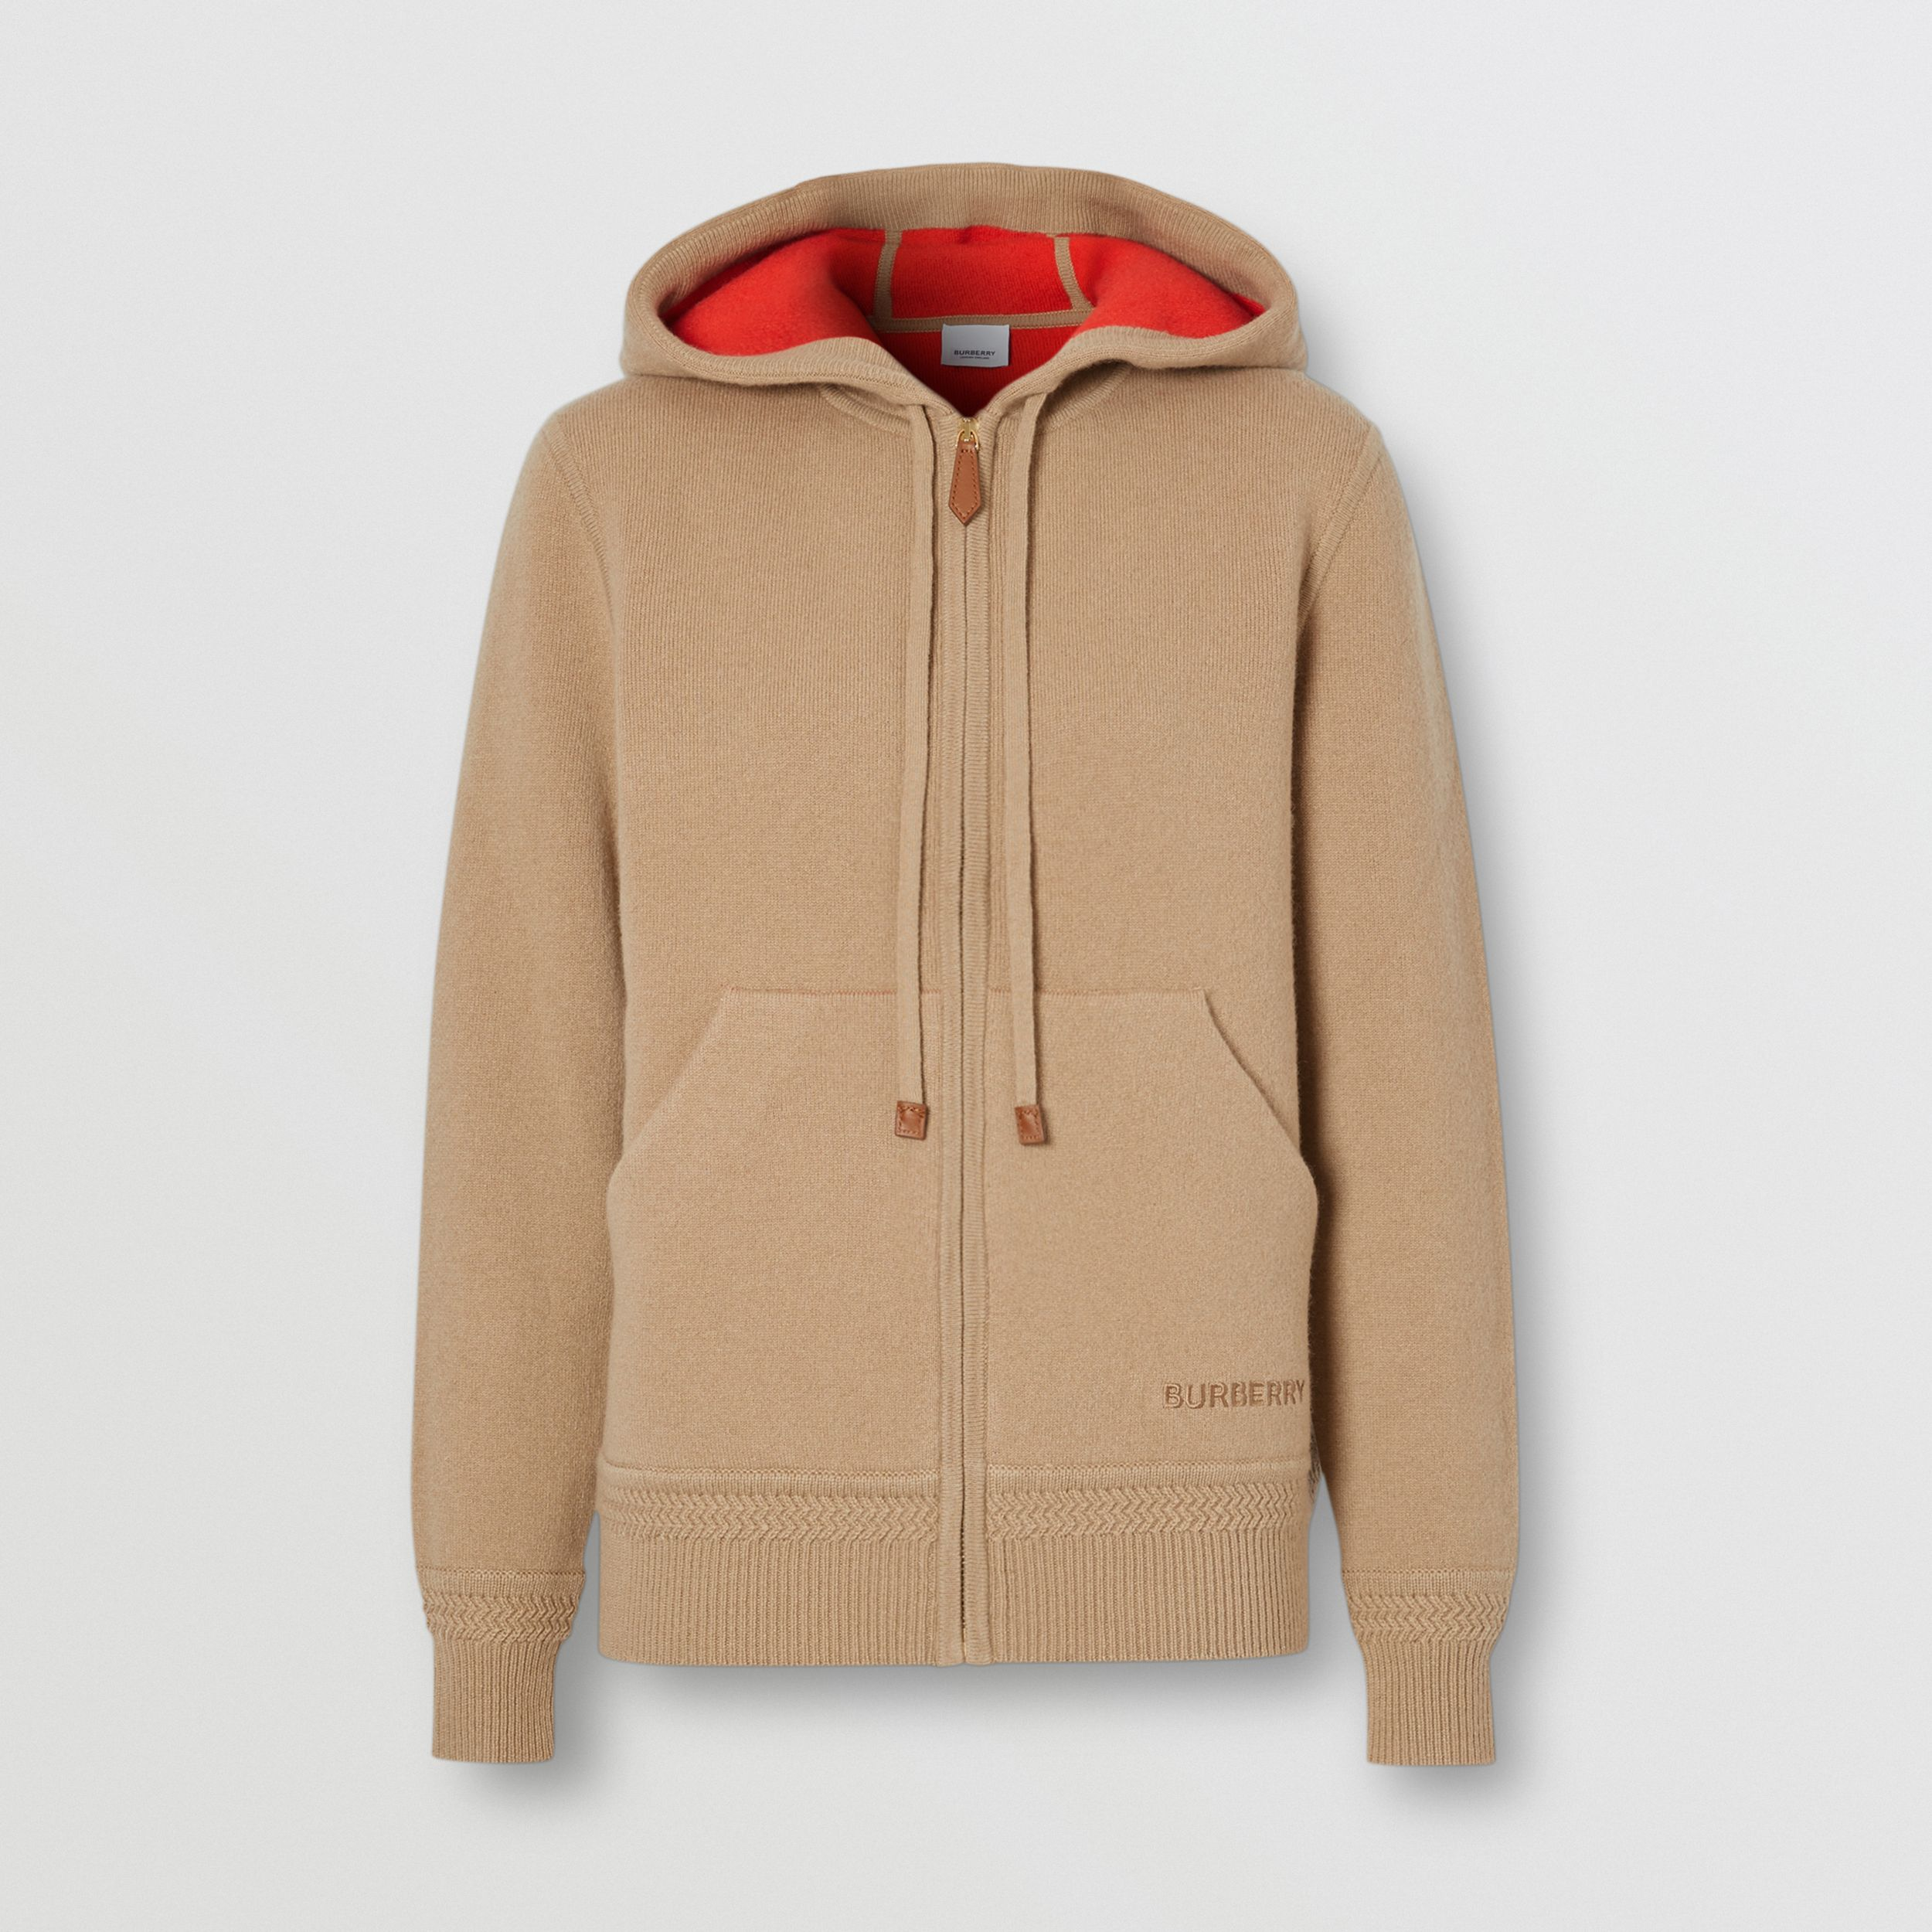 Embroidered Logo Cashmere Hooded Top in Archive Beige - Women | Burberry - 4